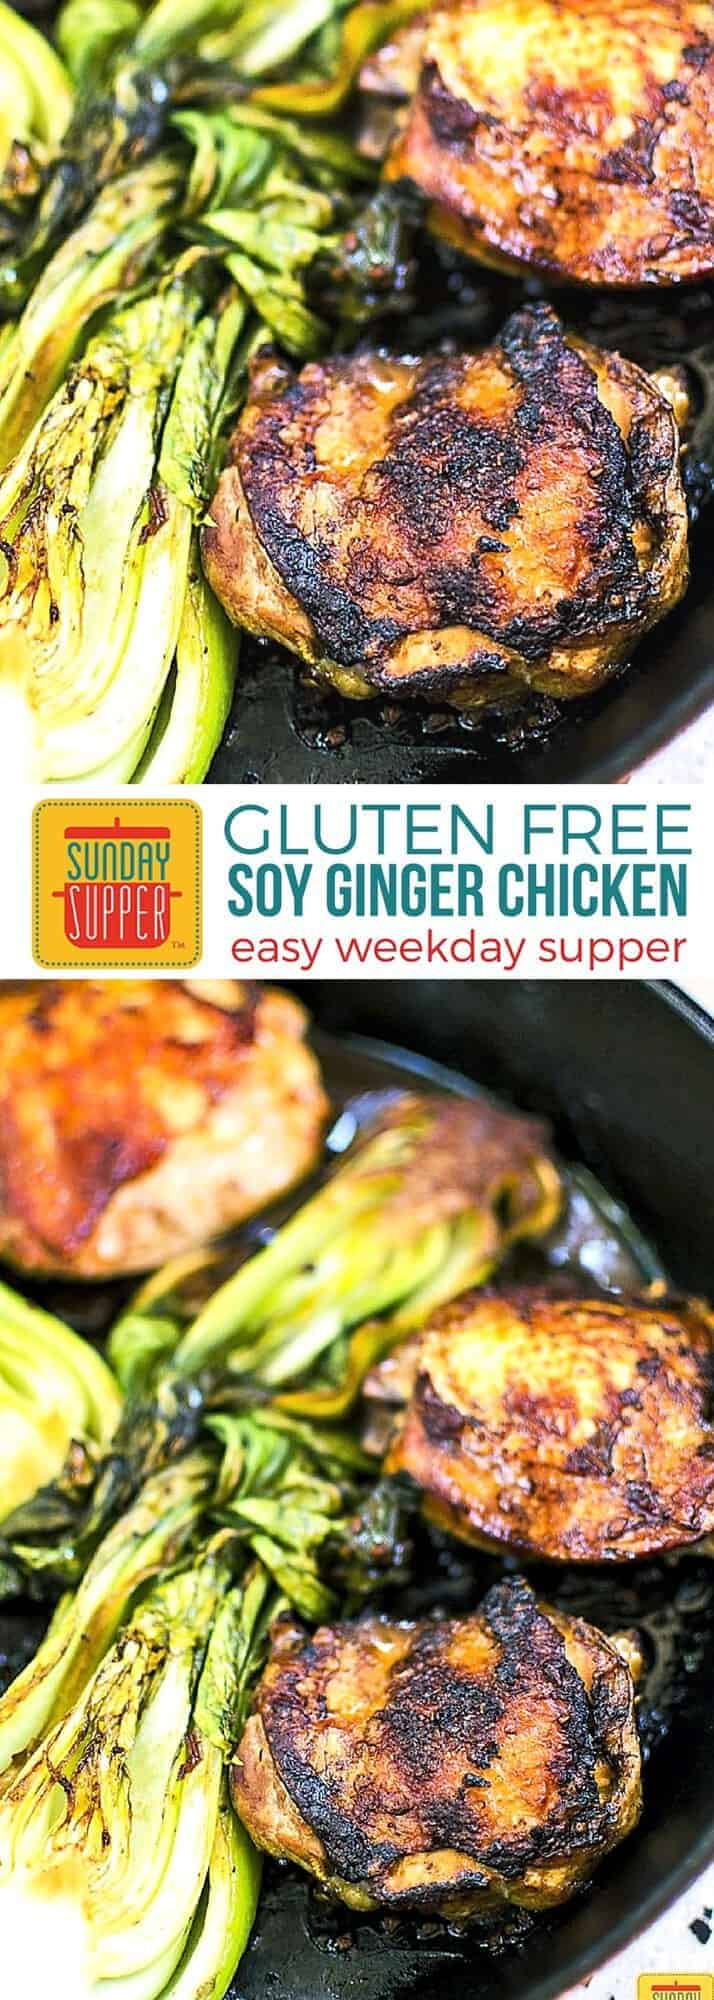 Gluten Free Soy Ginger Chicken Thighs recipe. Crispy chicken skin, tender dark meat, and an affordable price sticker; what's not to love! These Soy Ginger Chicken Thighs take my favorite protein and give them an Asian flare. While this recipehas so many layers of flavors, it's composed of only a few simple ingredients. This recipe is quick and easy to make which is why we love it for weekday supper and our list of Gluten Free Holiday Recipes. #SundaySupper #GlutenFree #EasyRecipe